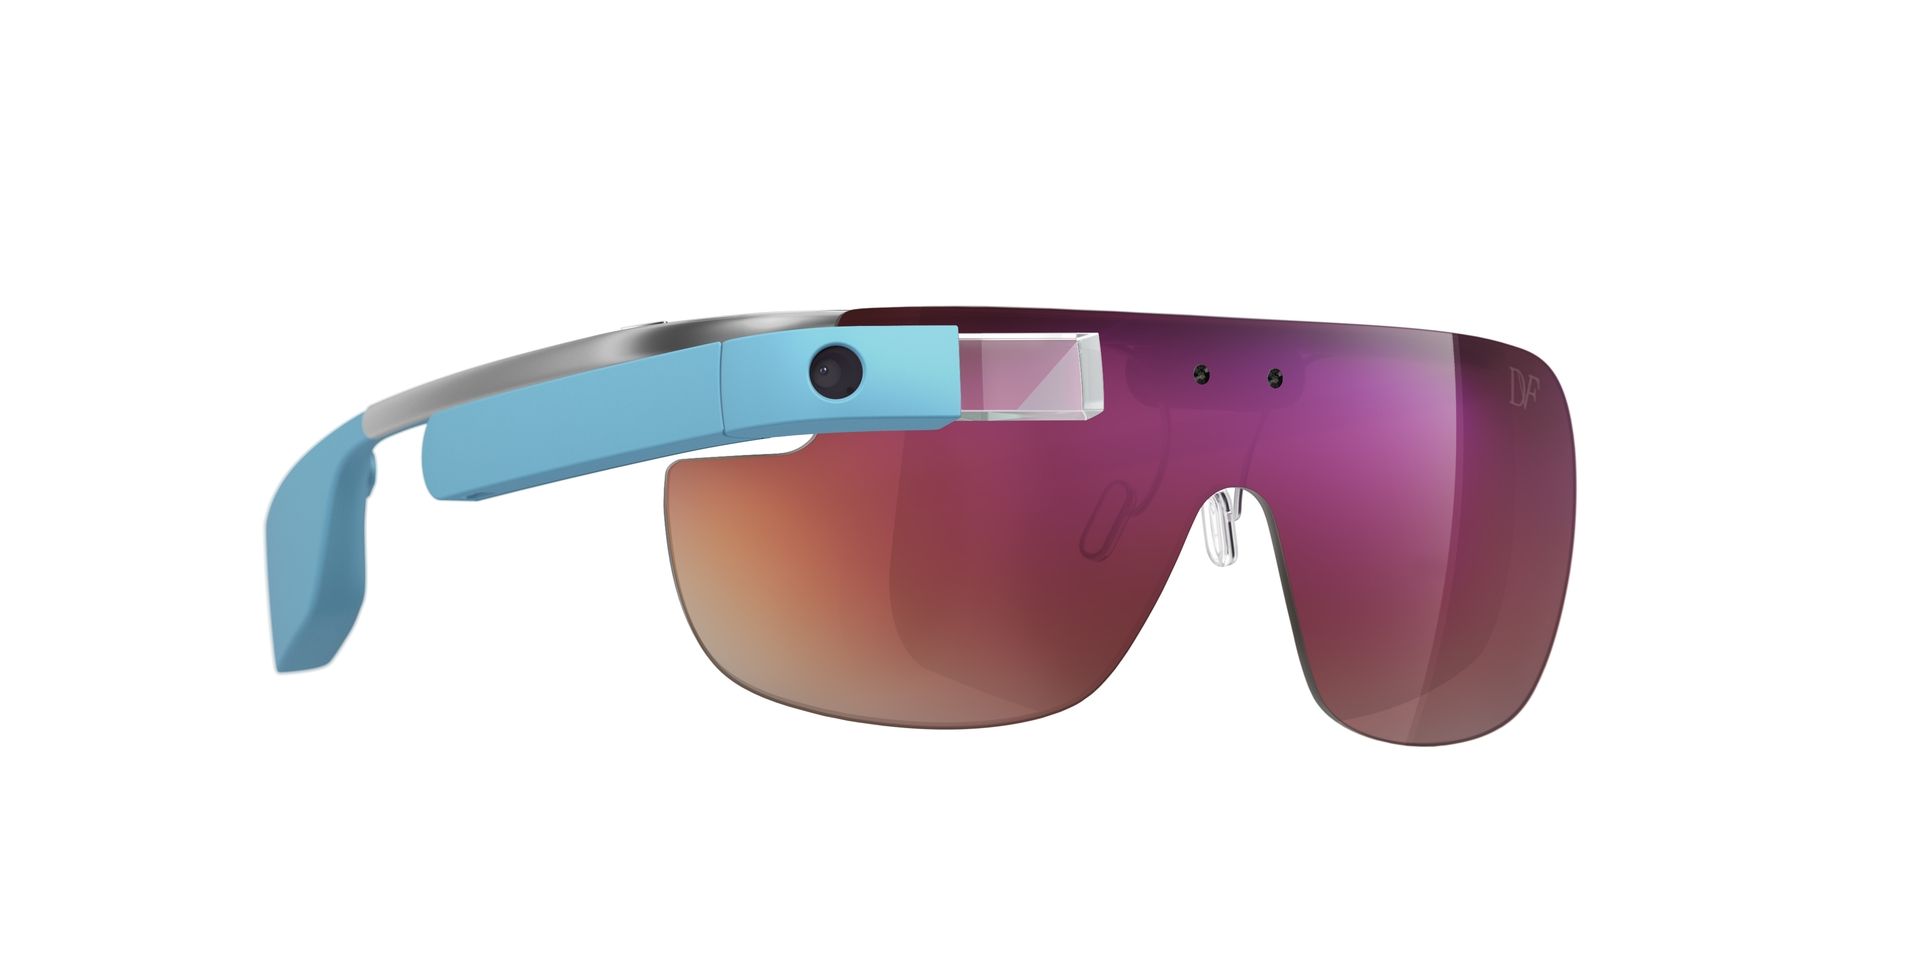 Furstenberg unveils limited edition Google Glass collection